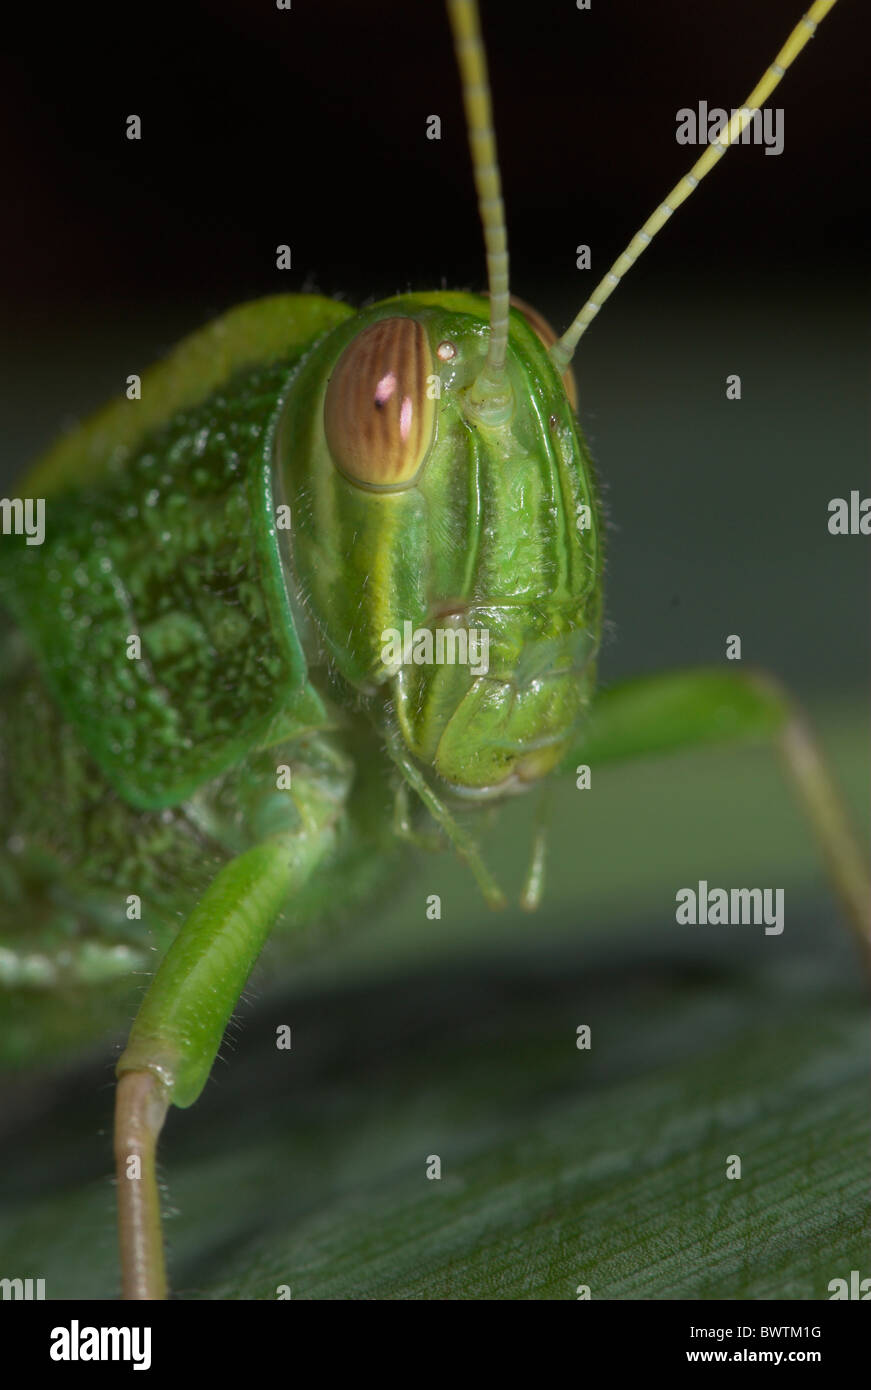 Jungle Grasshopper Orthoptera sp Thailand - Stock Image